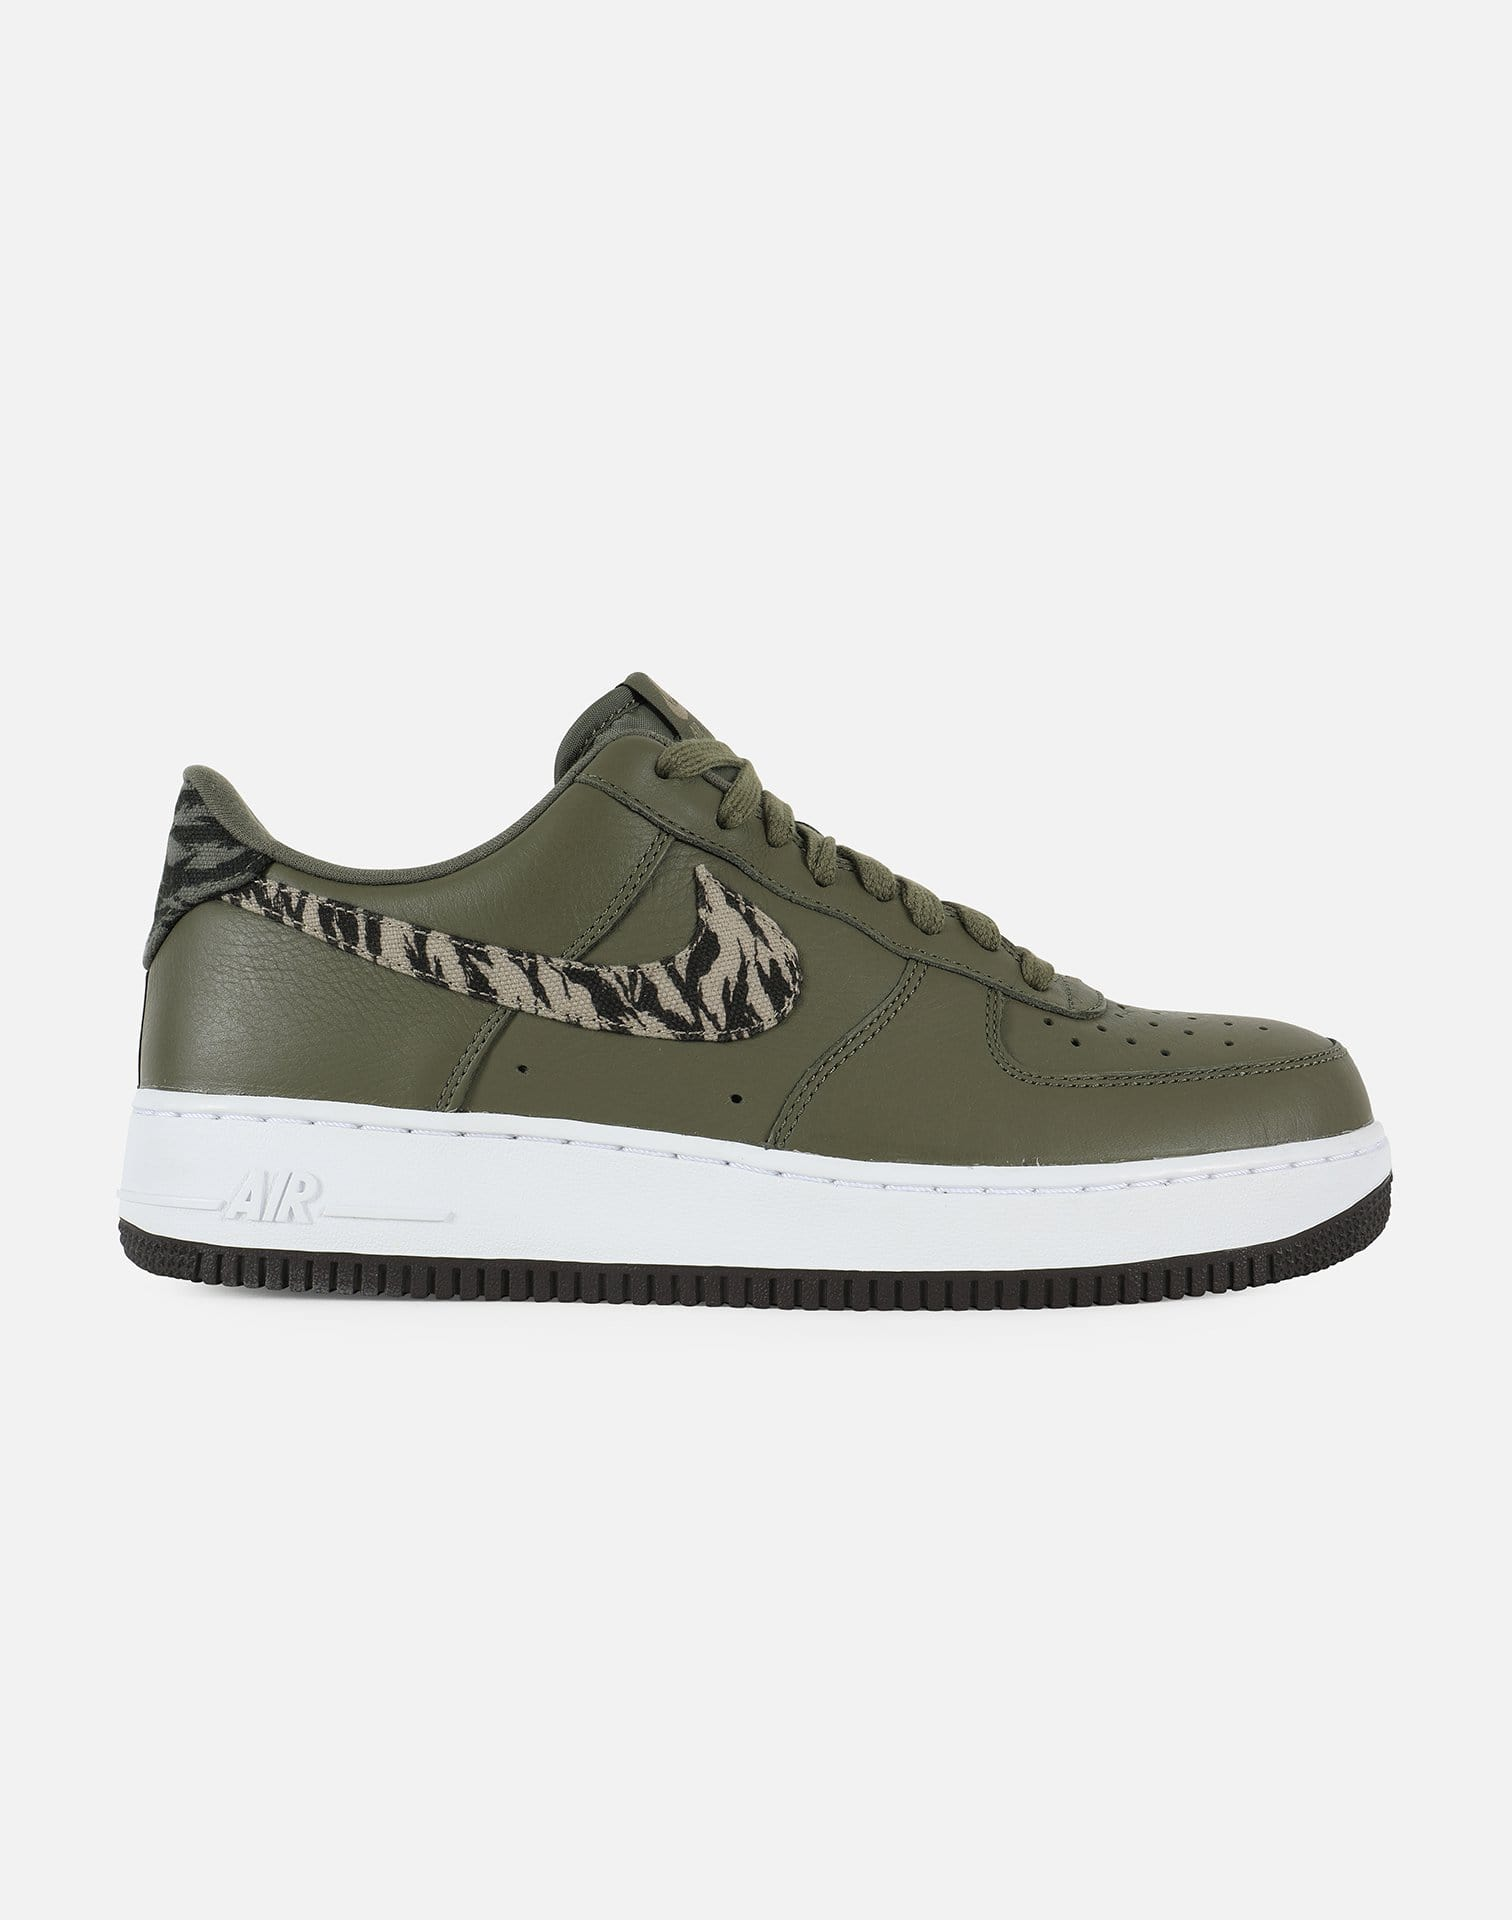 Nike Air Force 1 Tiger Camo